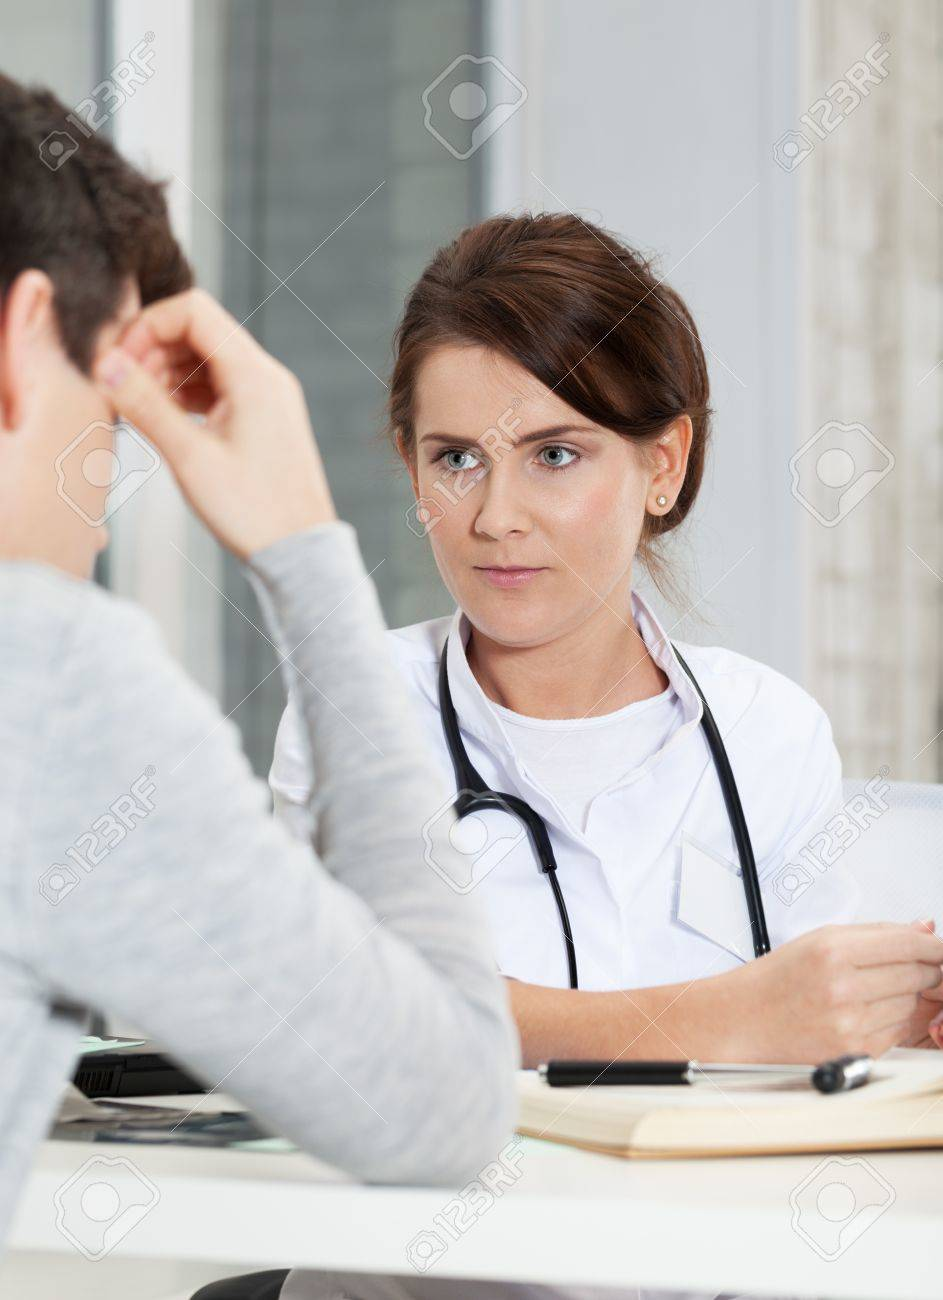 Patient explaining problem to doctor Stock Photo - 16890998